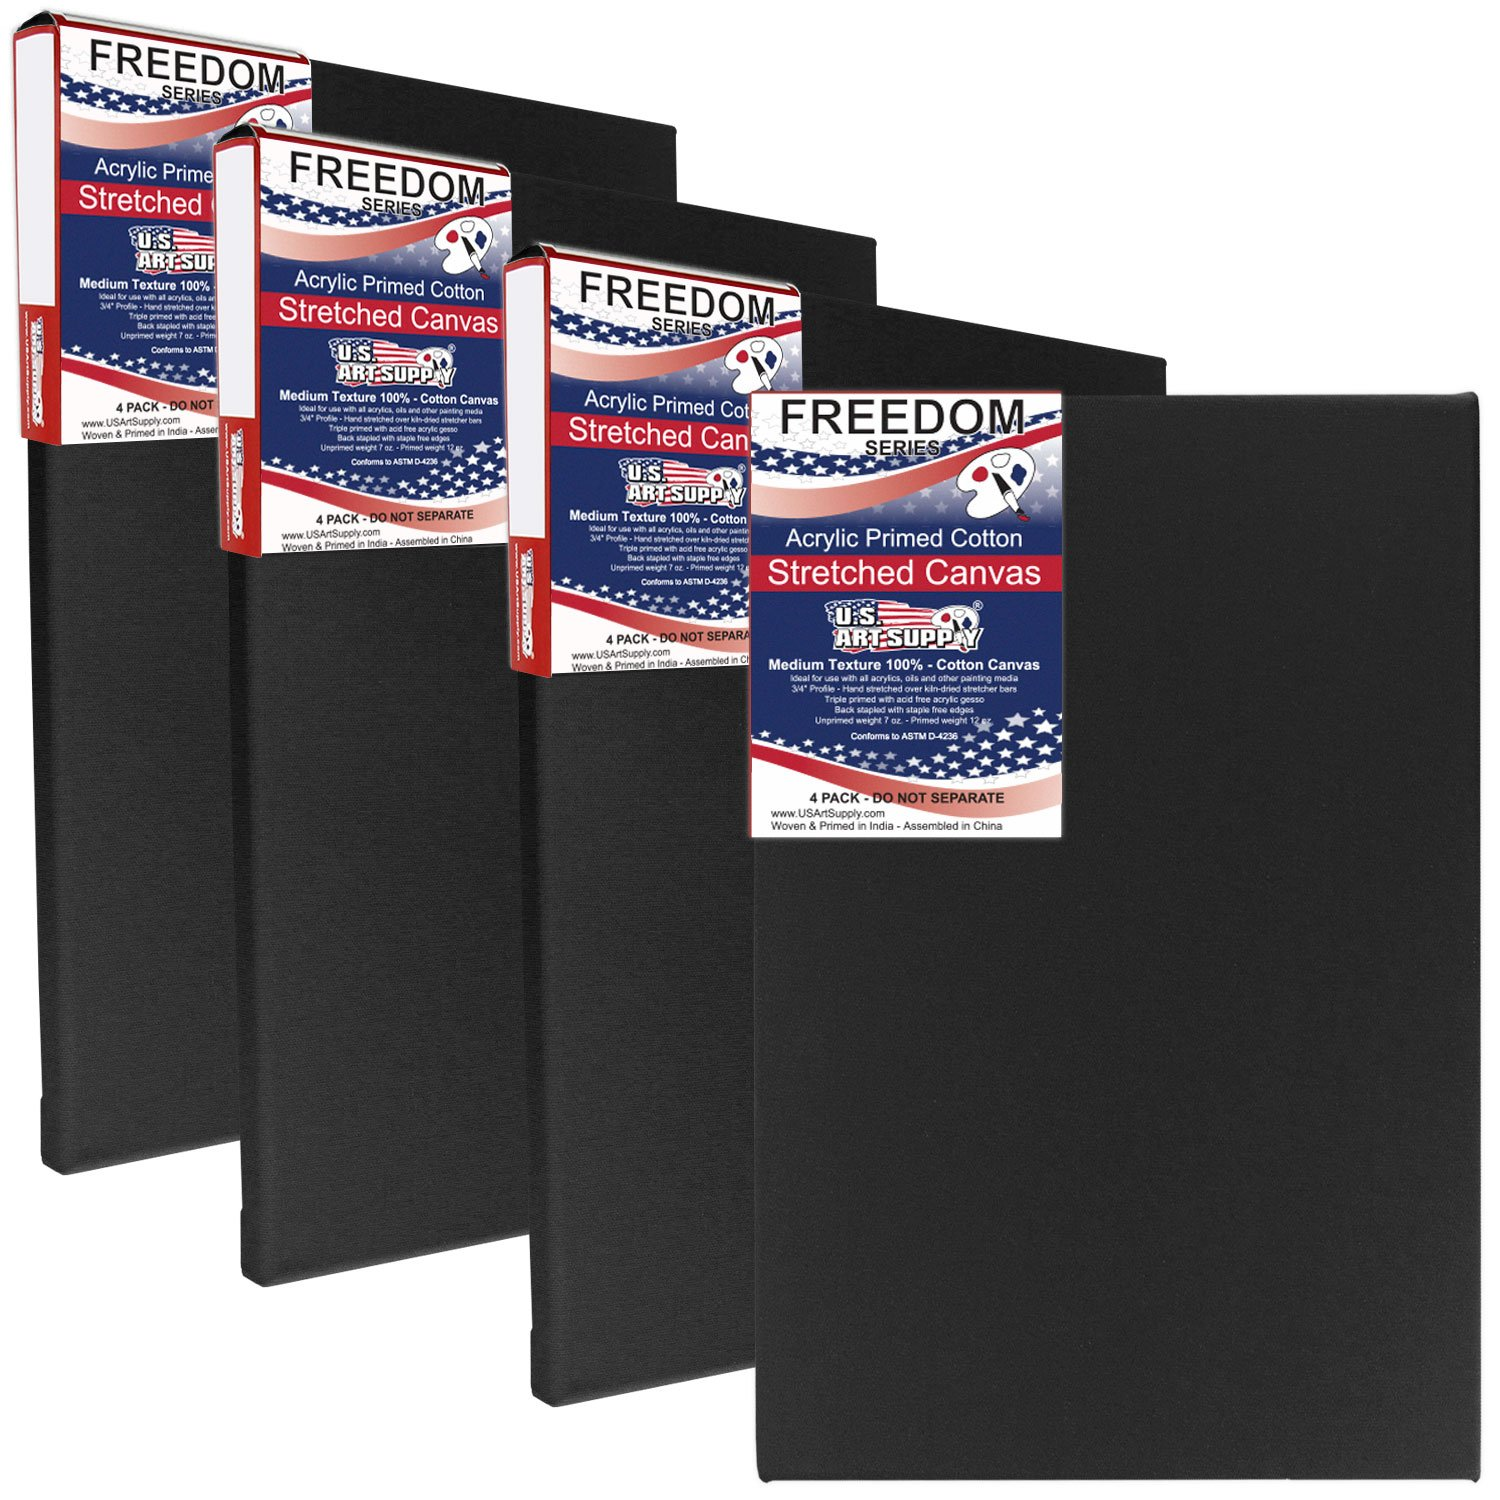 US Art Supply 11 x 14 inch Black Professional Quality Acid Free Stretched Canvas 4-Pack - 3/4 Profile 12 Ounce Primed Gesso - (1 Full Case of 4 Single Canvases) by US Art Supply